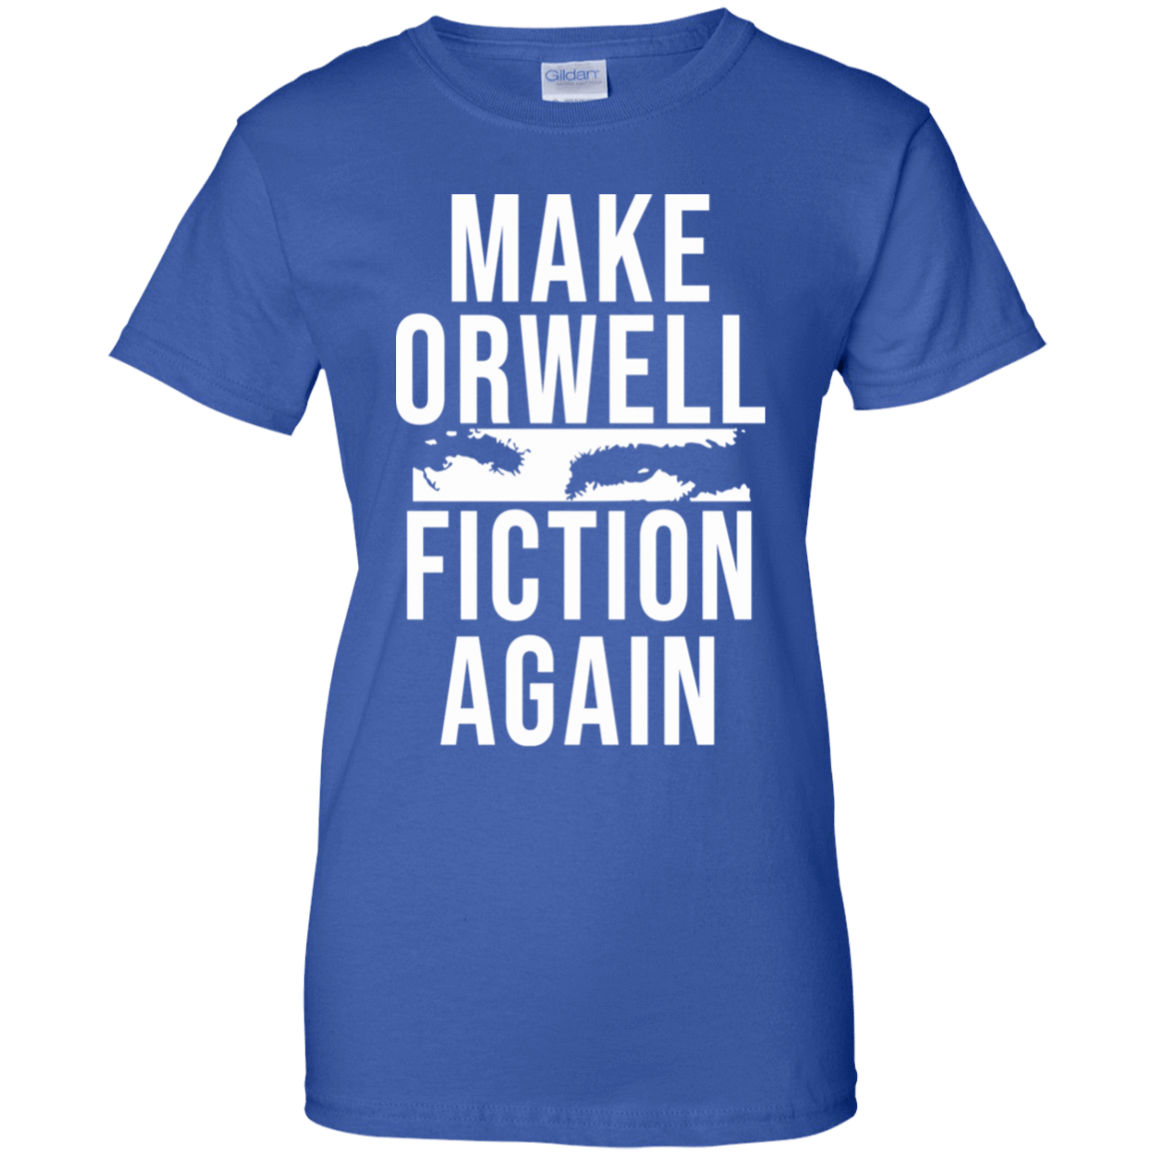 Make Orwell Fiction Again 939-9264-74209469-44807 - Tee Ript